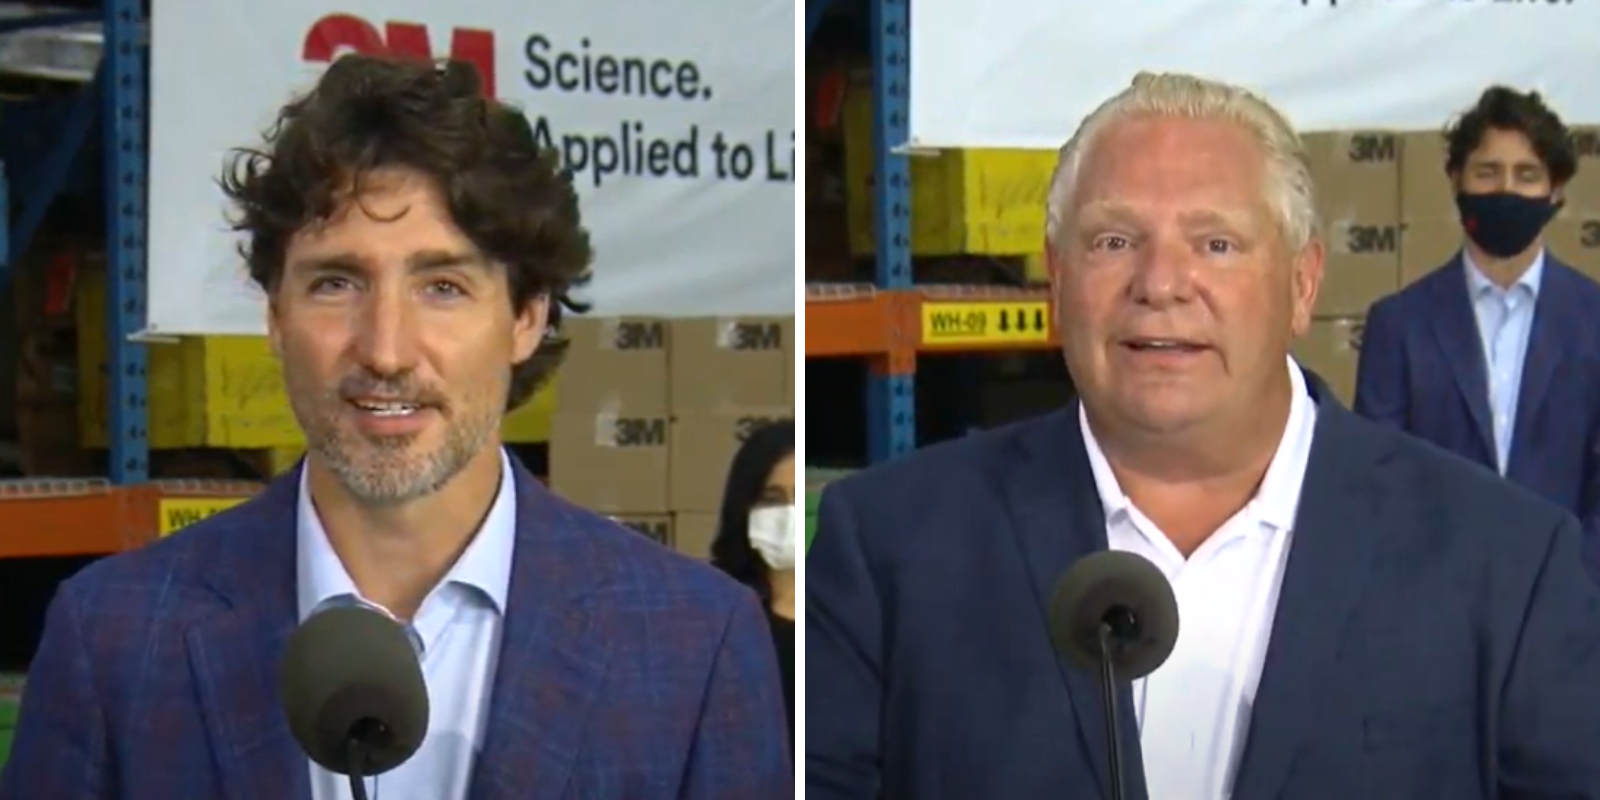 Trudeau dismisses severity of WE scandal at press conference with Premier Ford